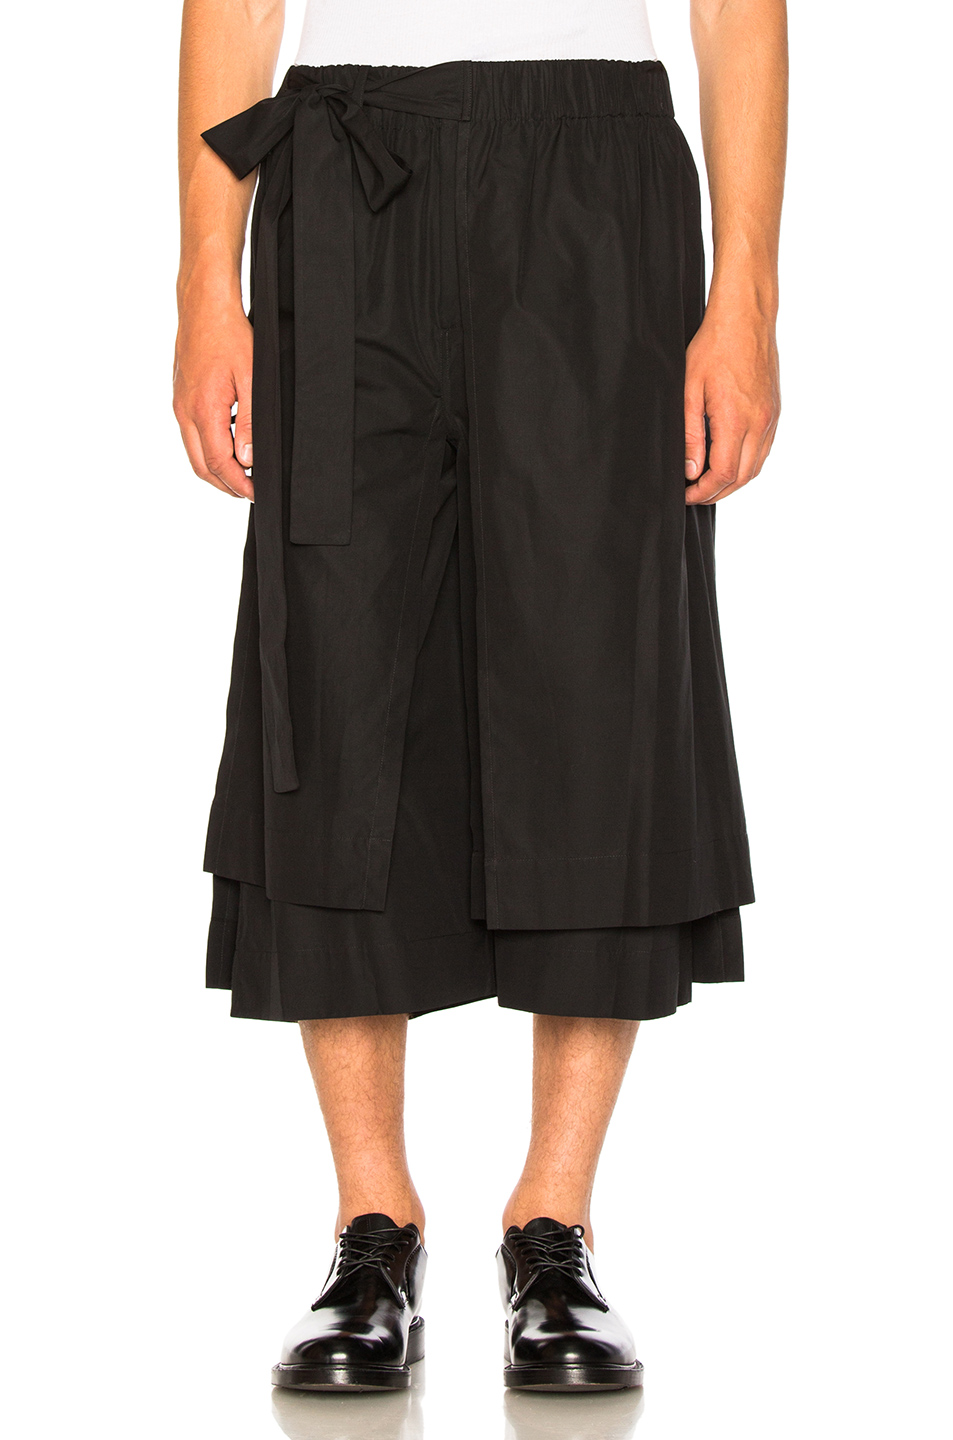 Craig Green Layered Cotton Track Shorts in Black